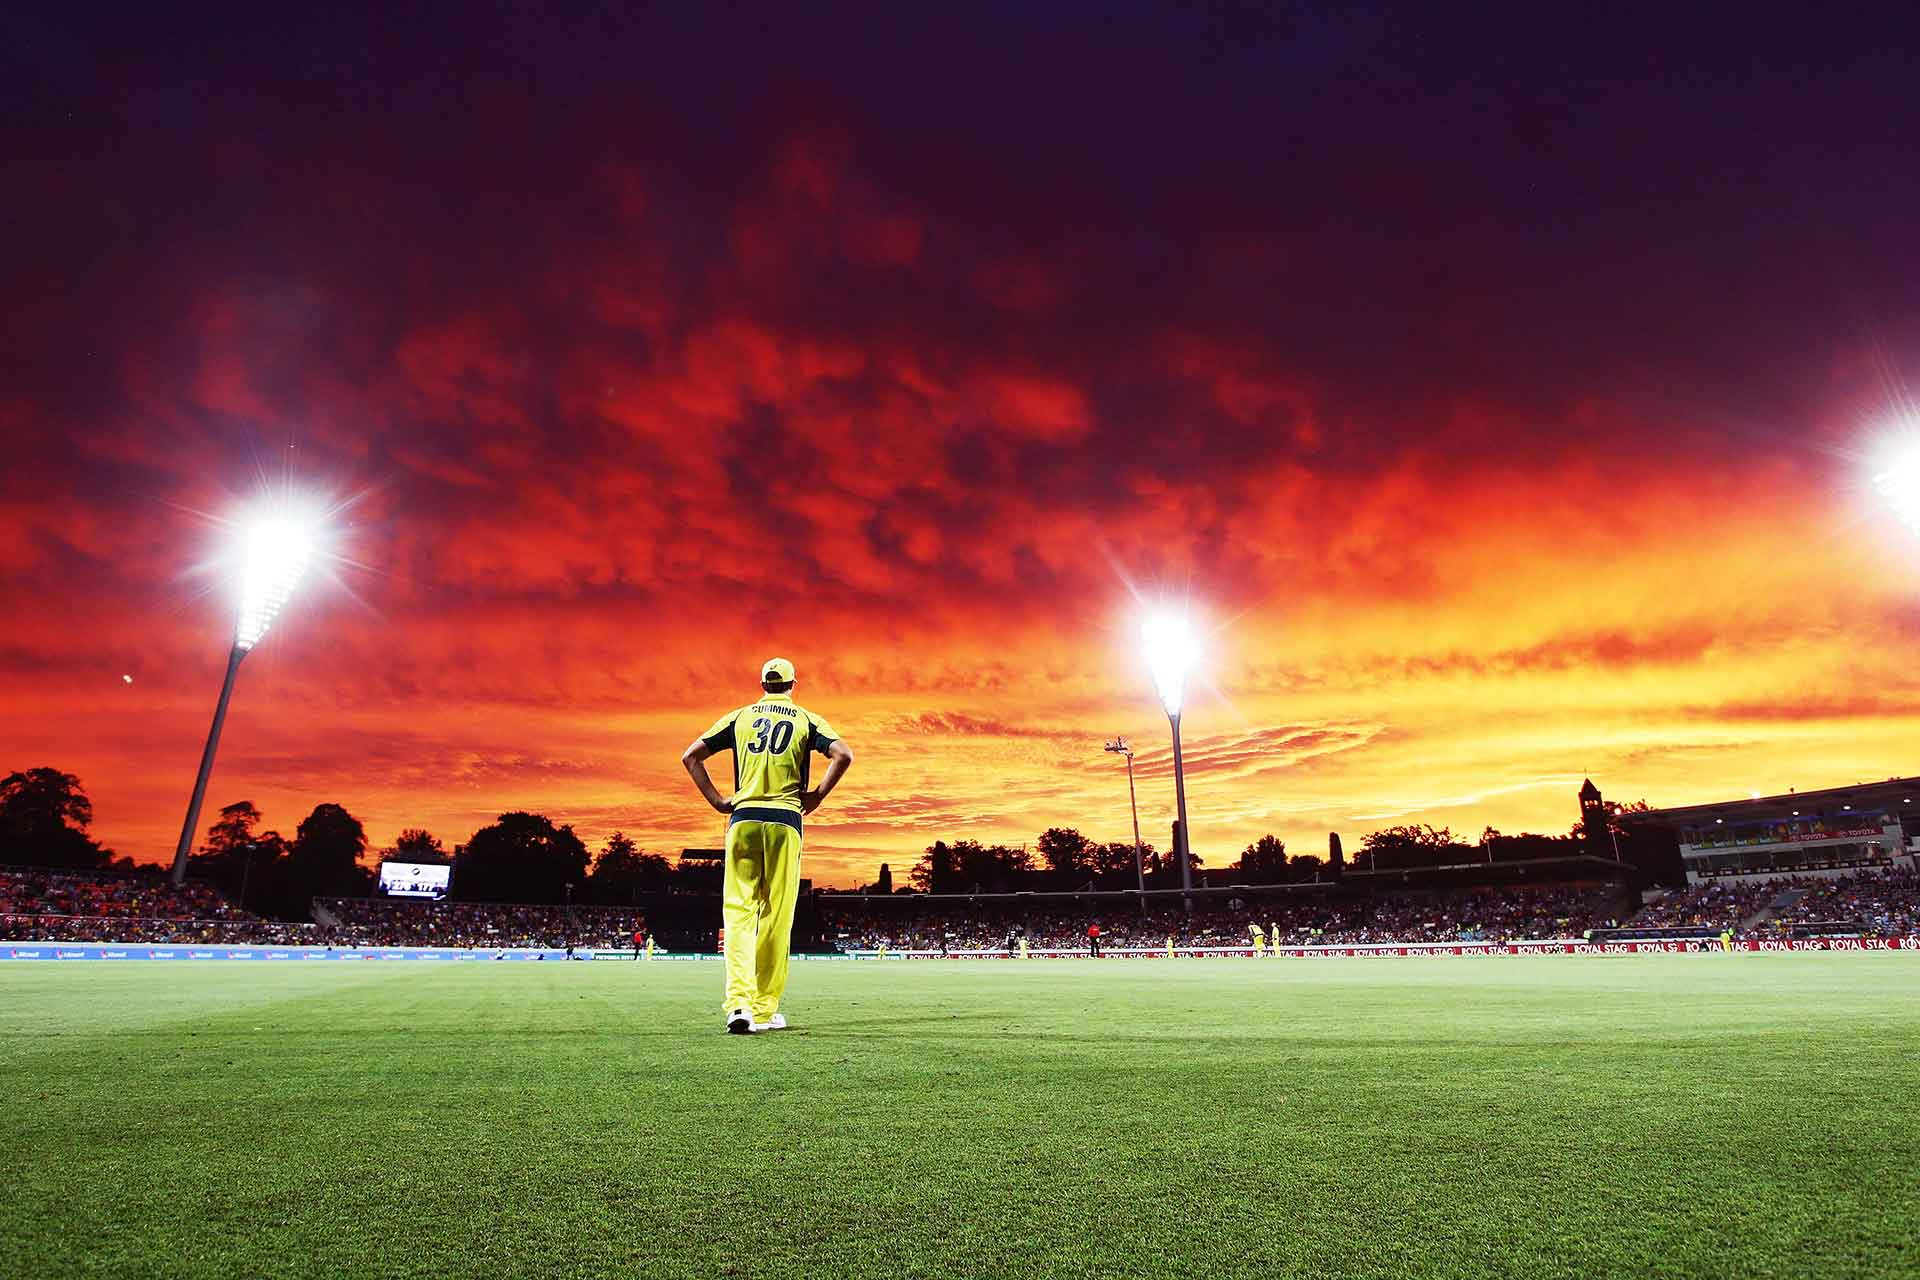 Manuka turns on the Magic to see Australia win back the Chappell-Hadlee Trophy